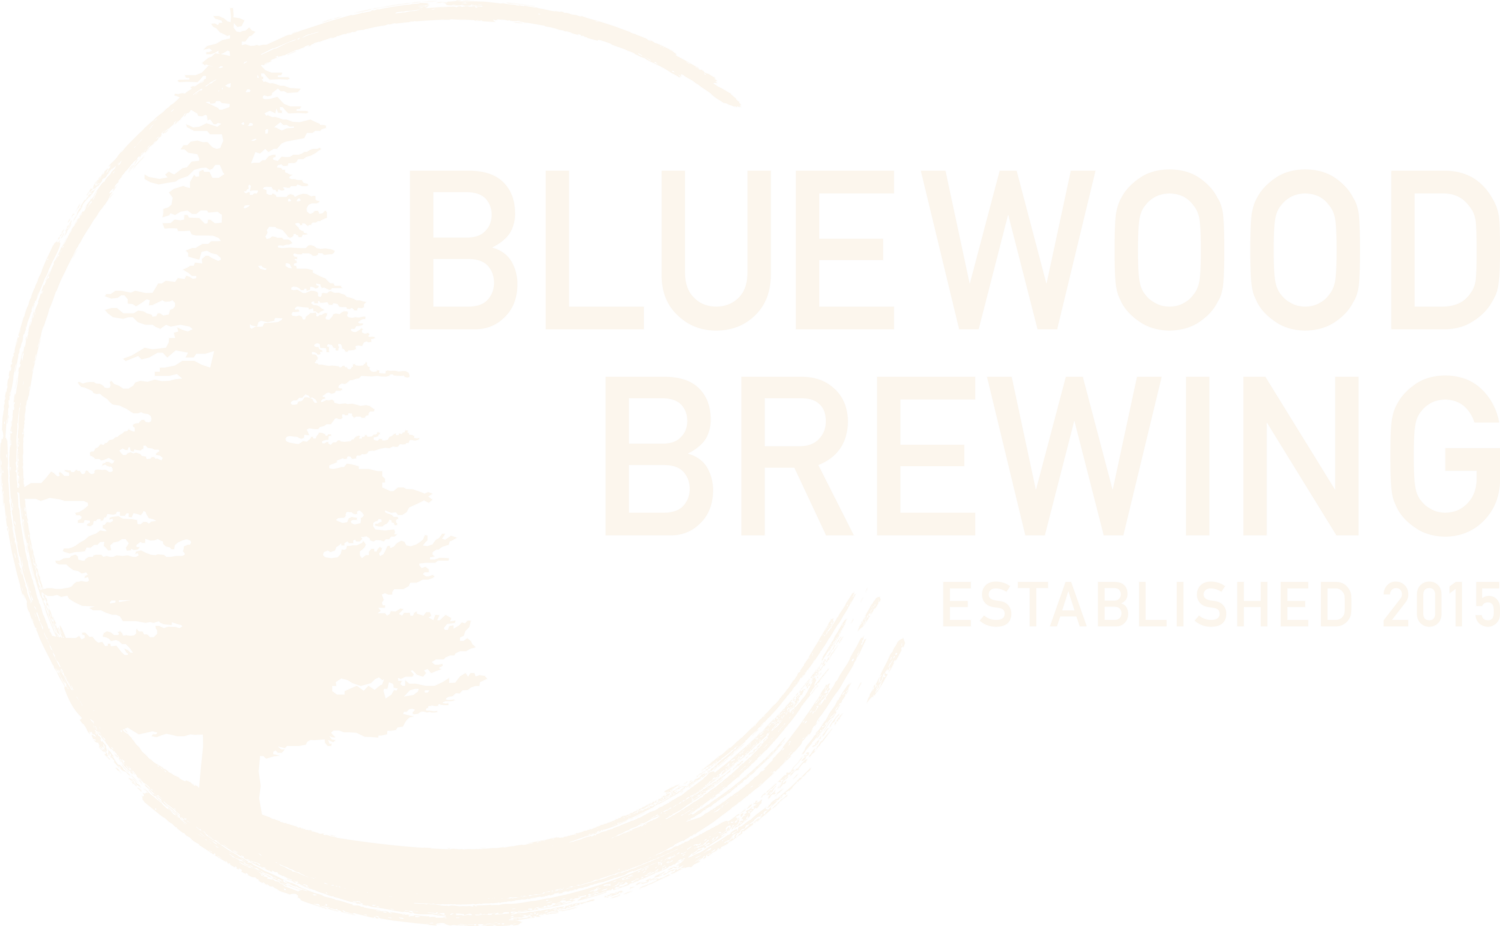 Bluewood Brewing